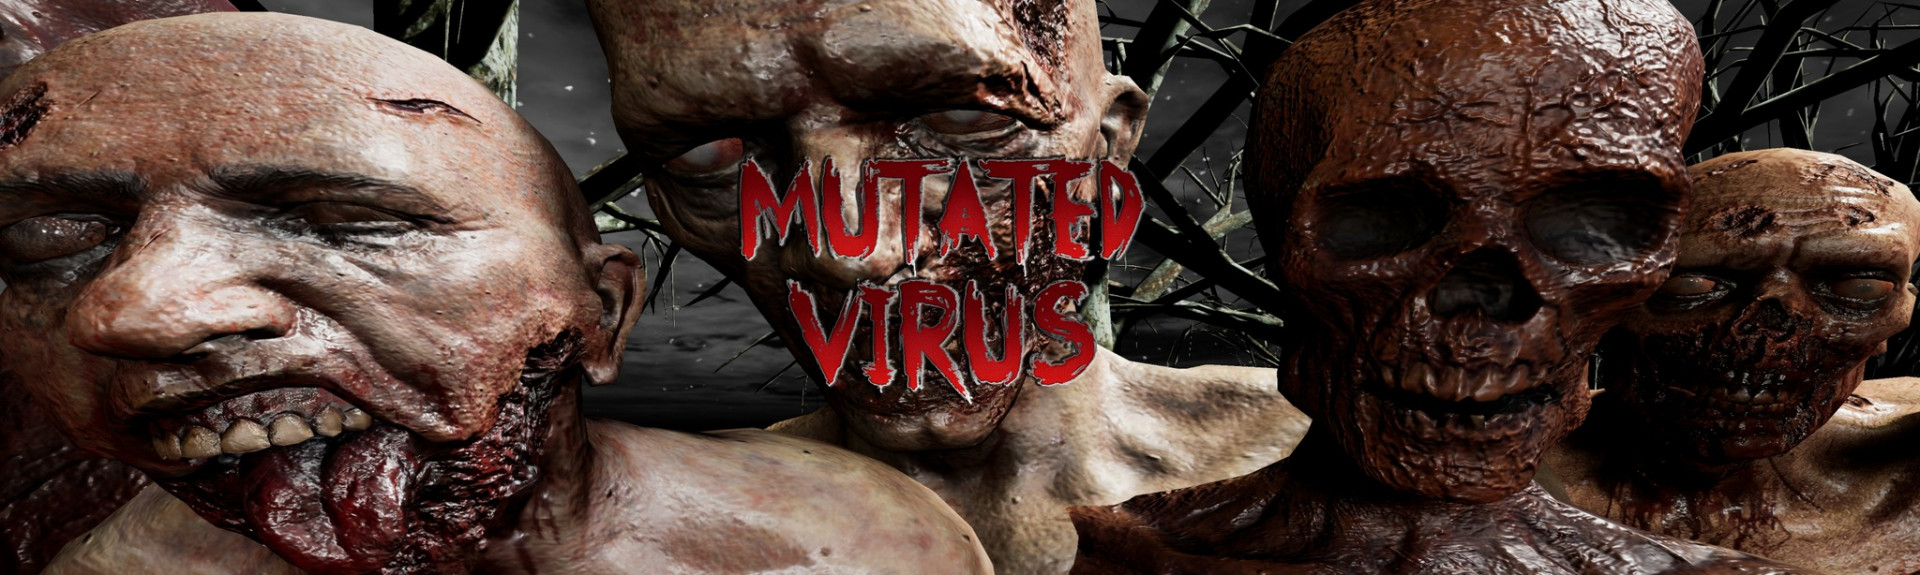 Mutated Virus